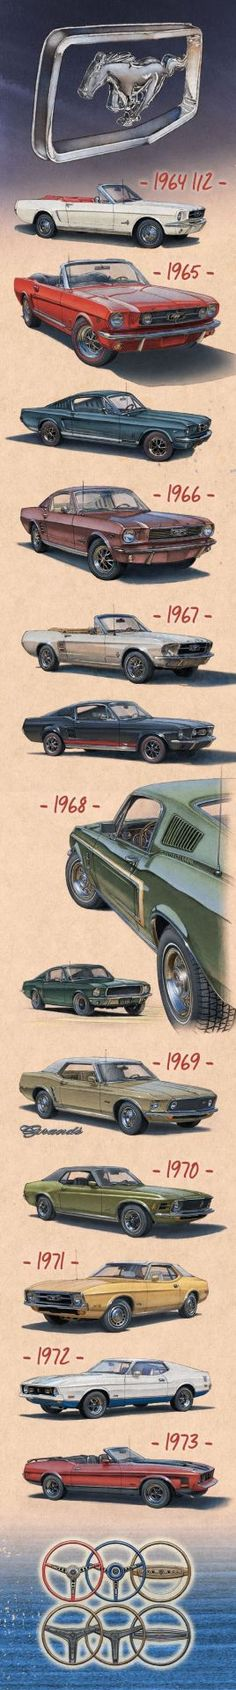 Muscle cars art ford mustangs ideas for 2019 Shelby Mustang, Shelby Gt 500, Mustang Fastback, Mustang Cars, Ford Mustangs, Pickup Auto, Carros Vw, Ford Mustang Classic, Mustang Convertible